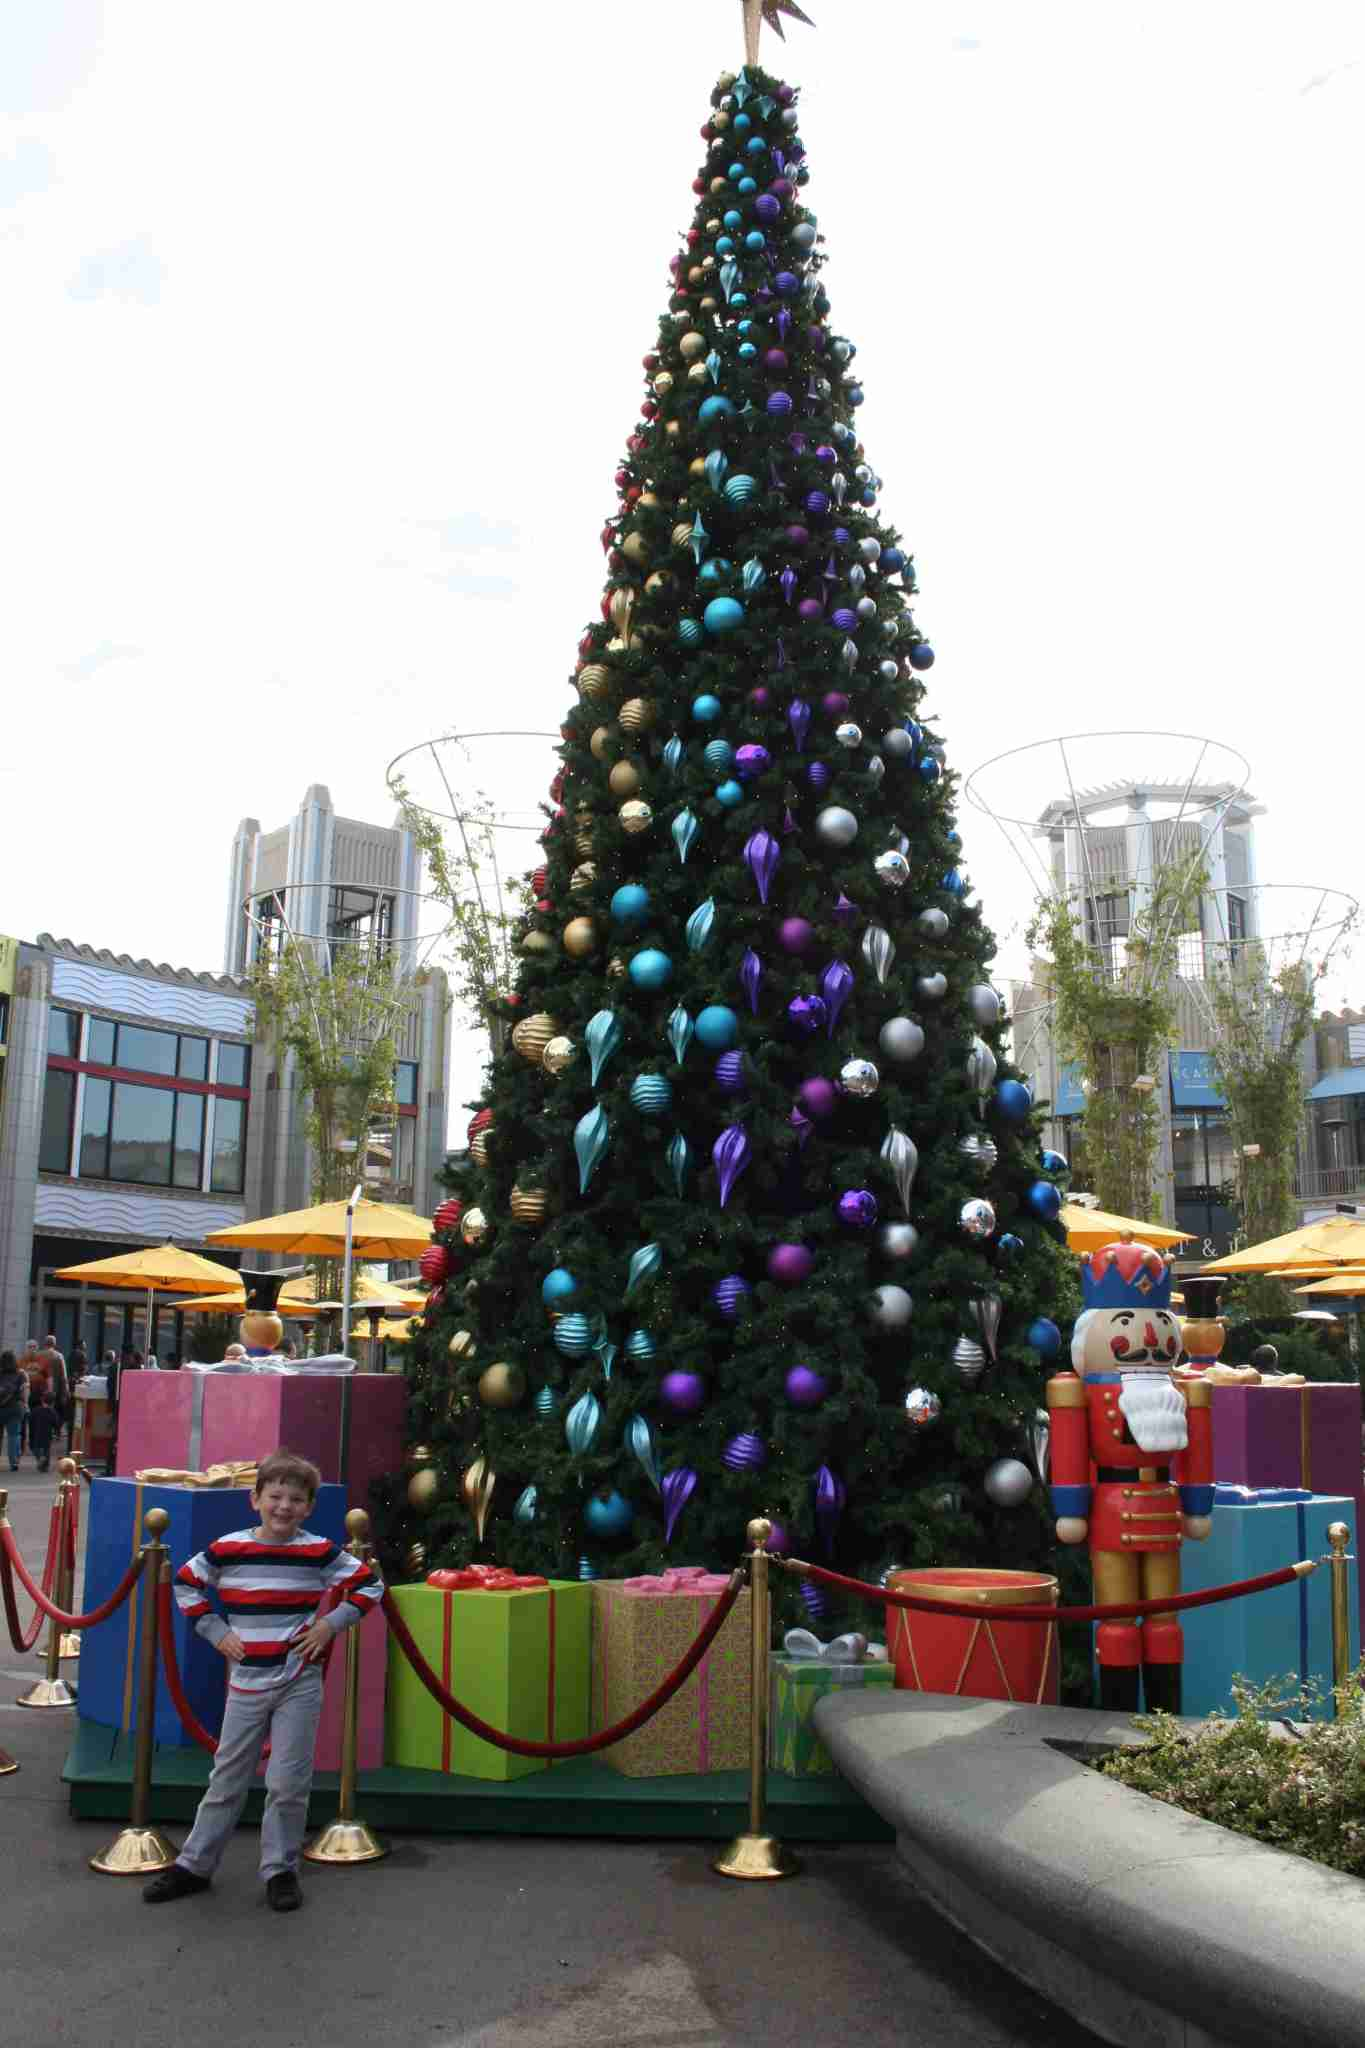 Downtown Disney Christmas tree. (Photo by Julie Bigboy)